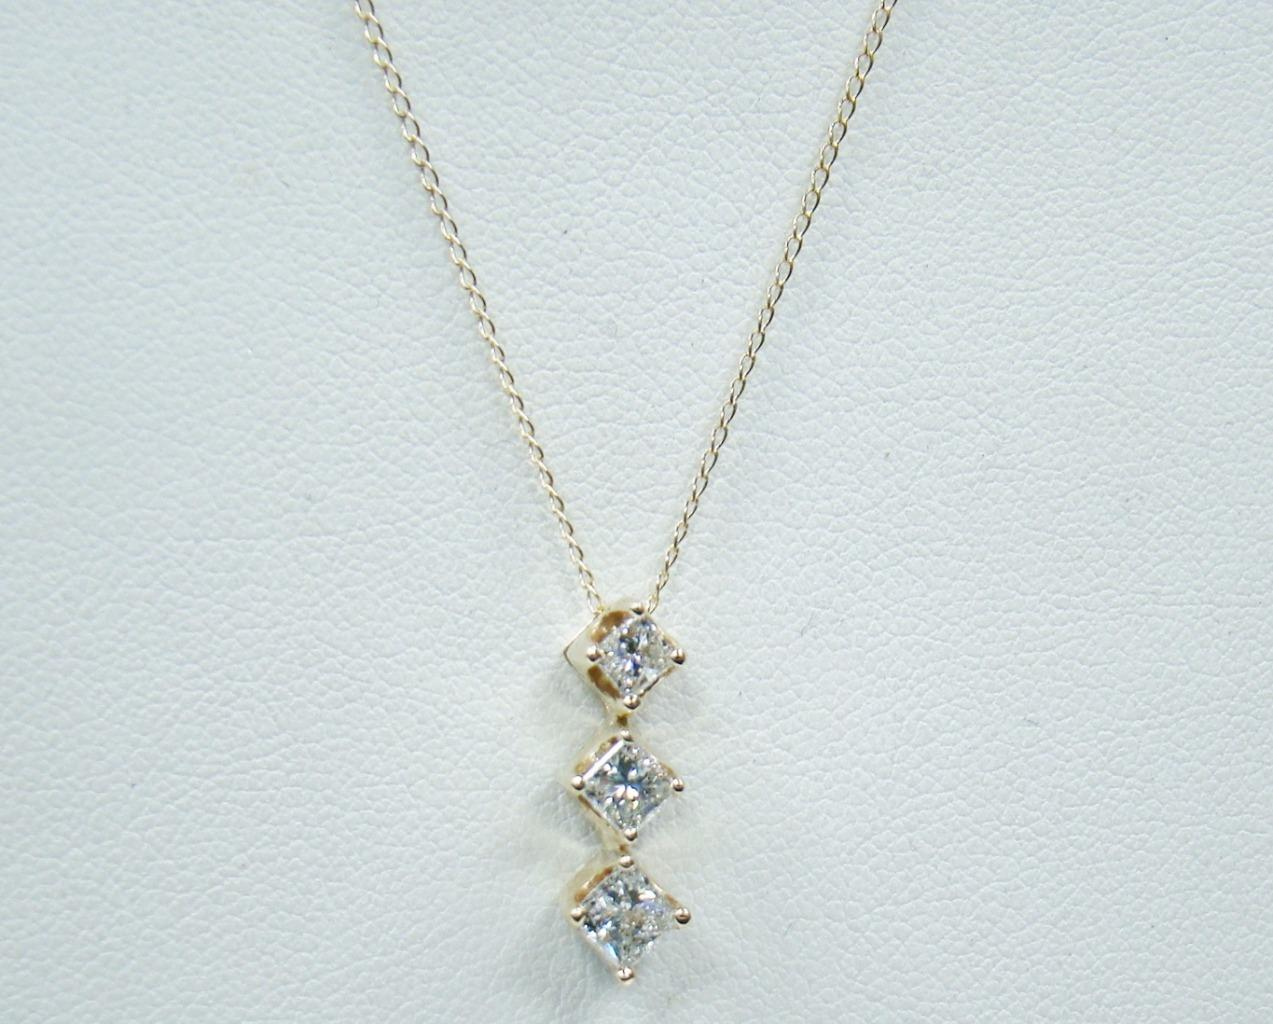 "Zales Jewelry Necklaces >> 14K YELLOW GOLD ZALES DIAMOND PENDANT 1.00 CTTW 14K 16"" NECKLACE 3 PRINCESS CUTS"